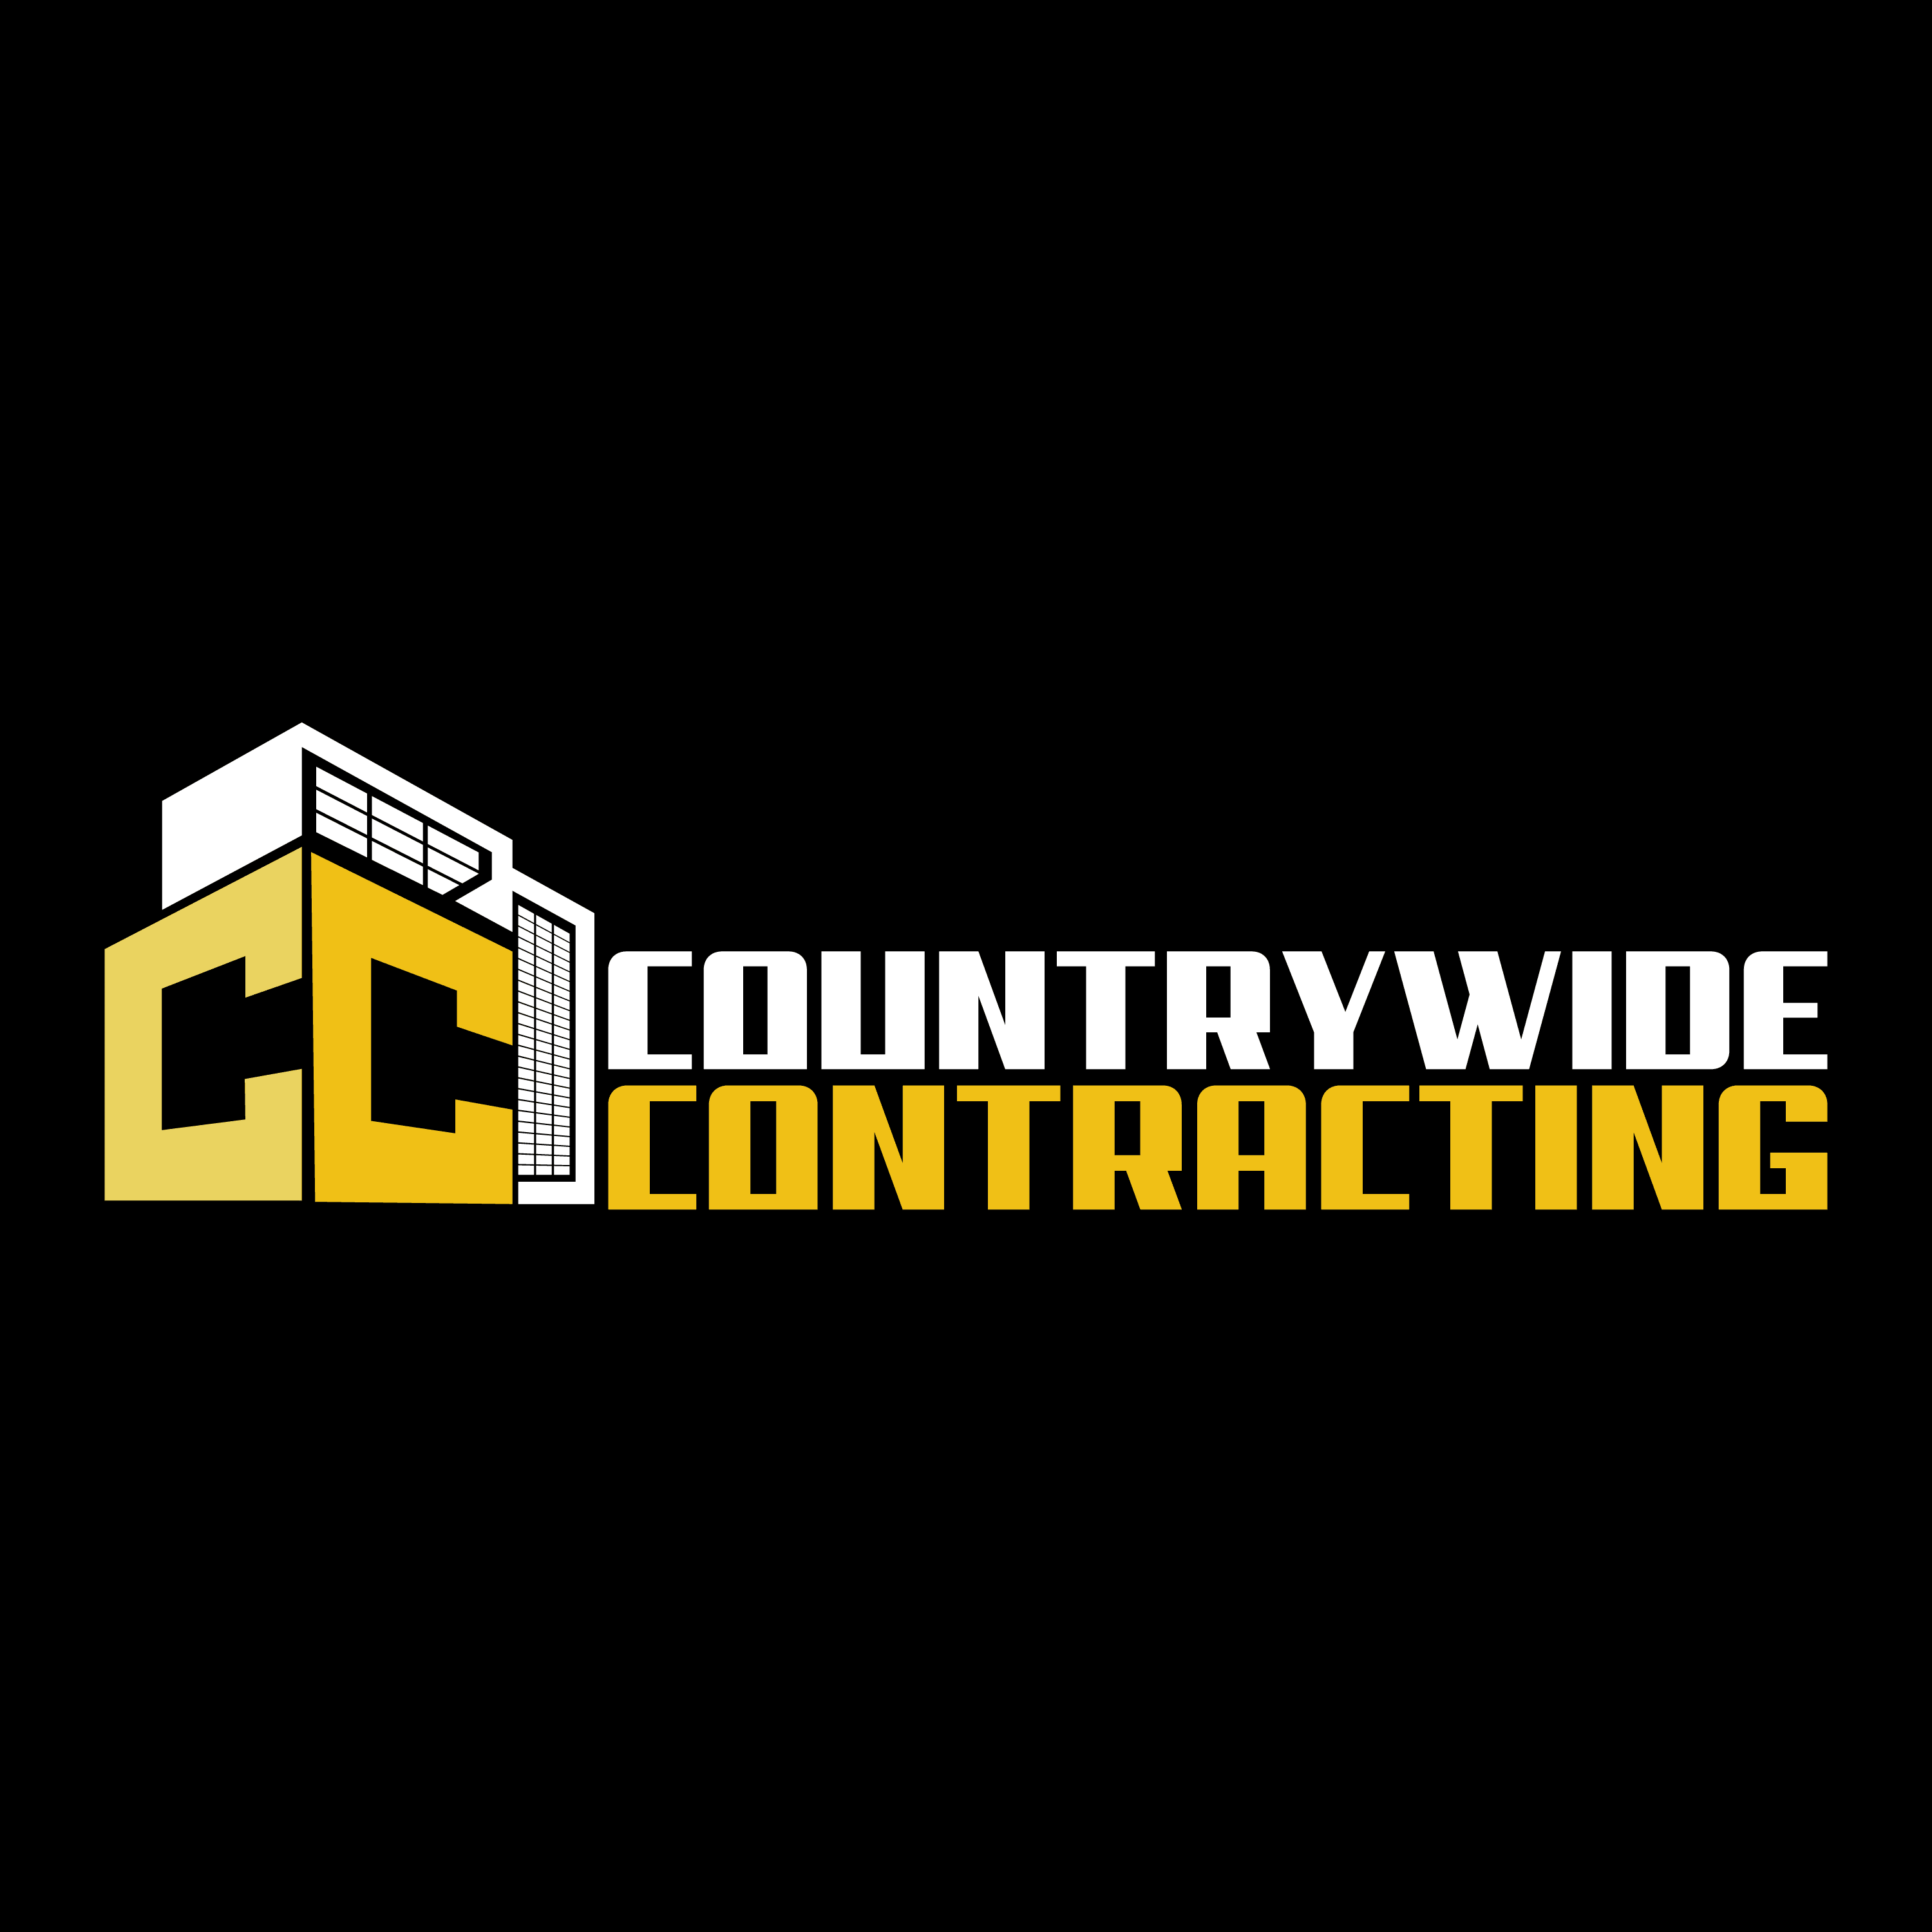 Countrywide Contracting Inc.